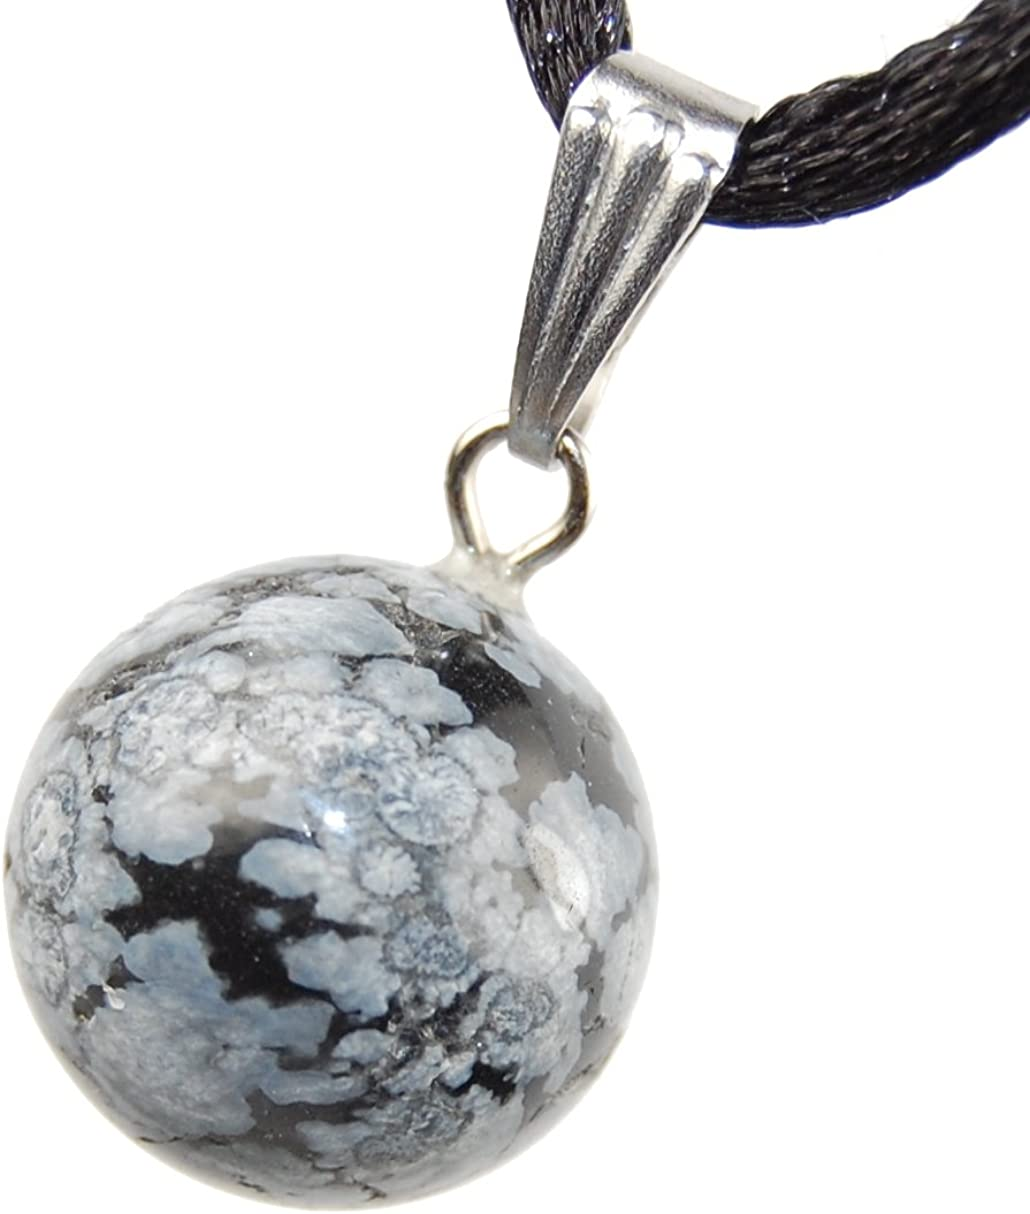 Crystal Gemstone Collectibles Carved Necklace Handmade Charm Steampunkers USA Celestial Collection 20-22 Inch Adjustable Black Cord 20mm Classic Star Clear Quartz White